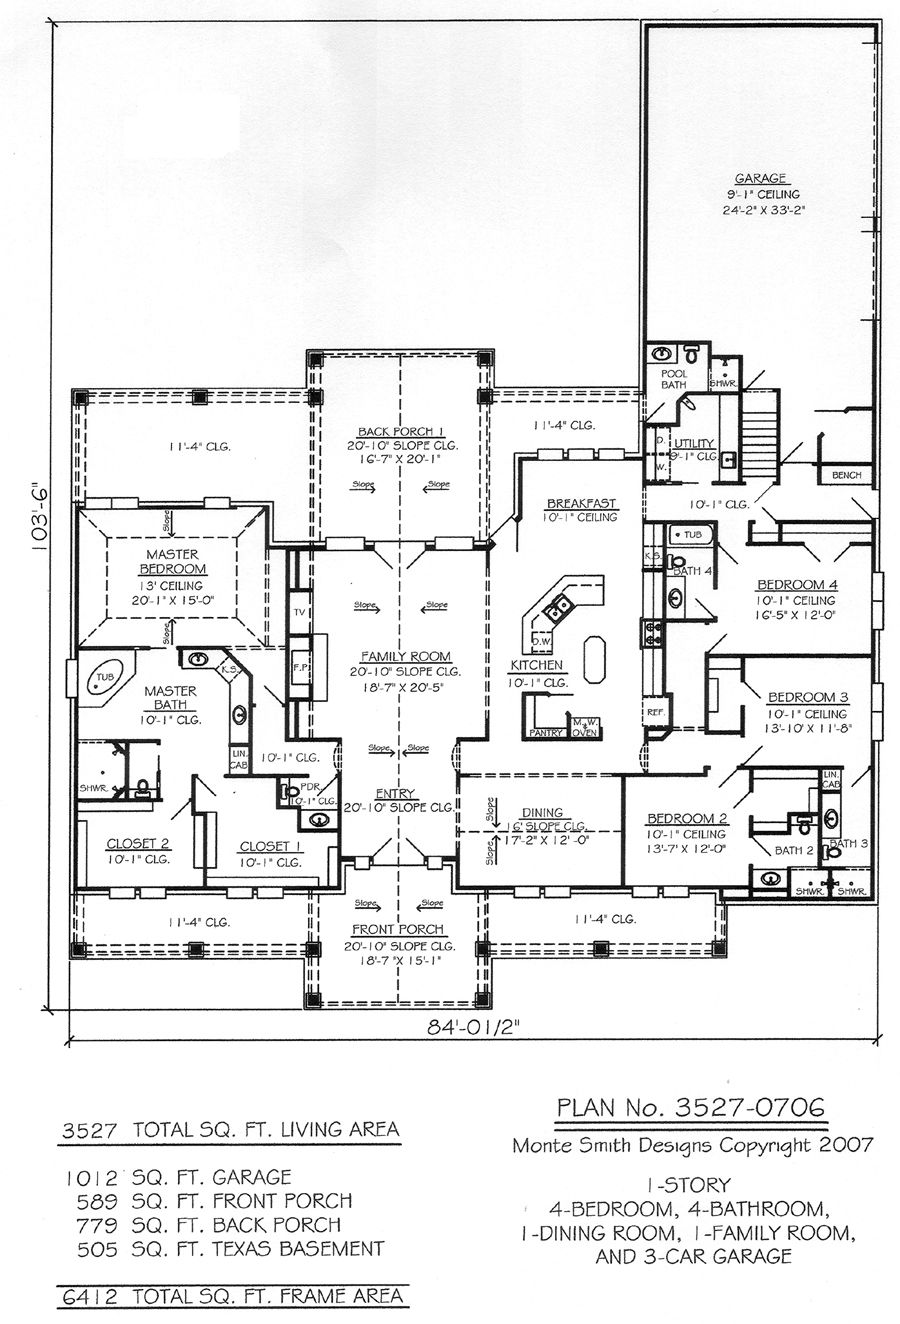 2 bedroom bath 3 car garage house plans for 2 car garage house plans